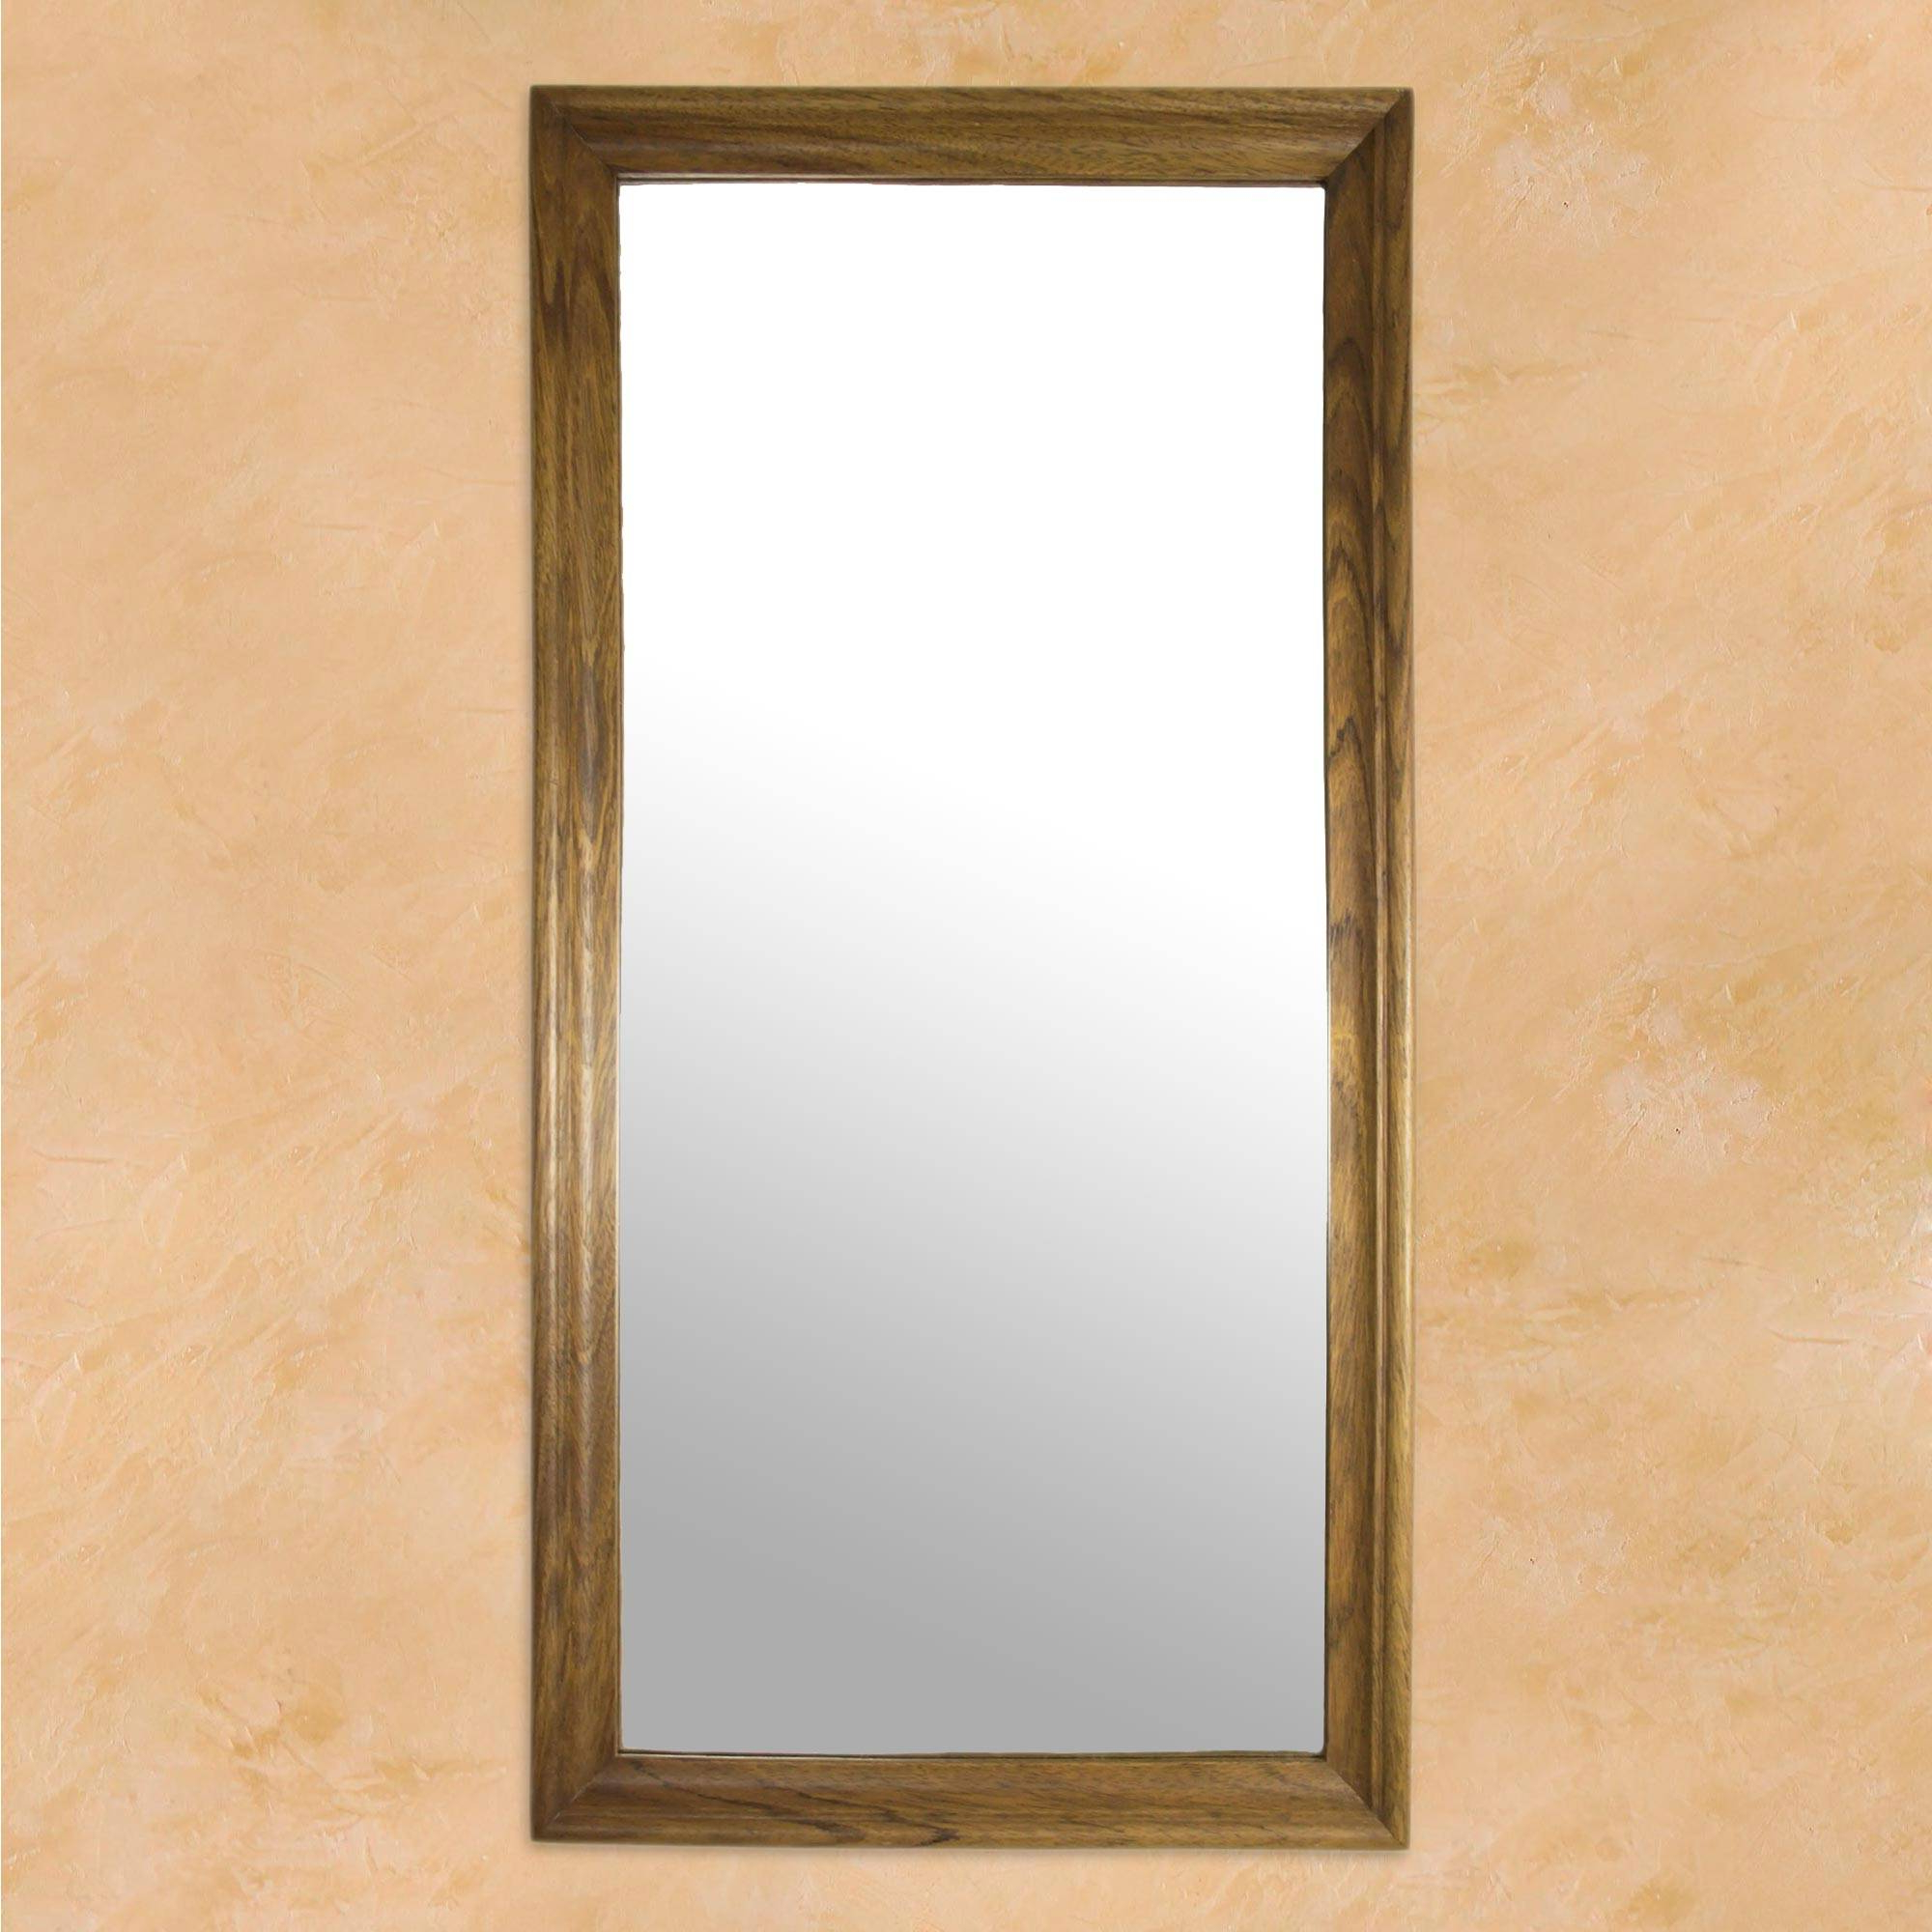 Mexican Wall Mirrors Throughout Most Recent Rectangular Minimalist Mexican Hardwood Wall Mirror, 'california Ranch' (Gallery 1 of 20)